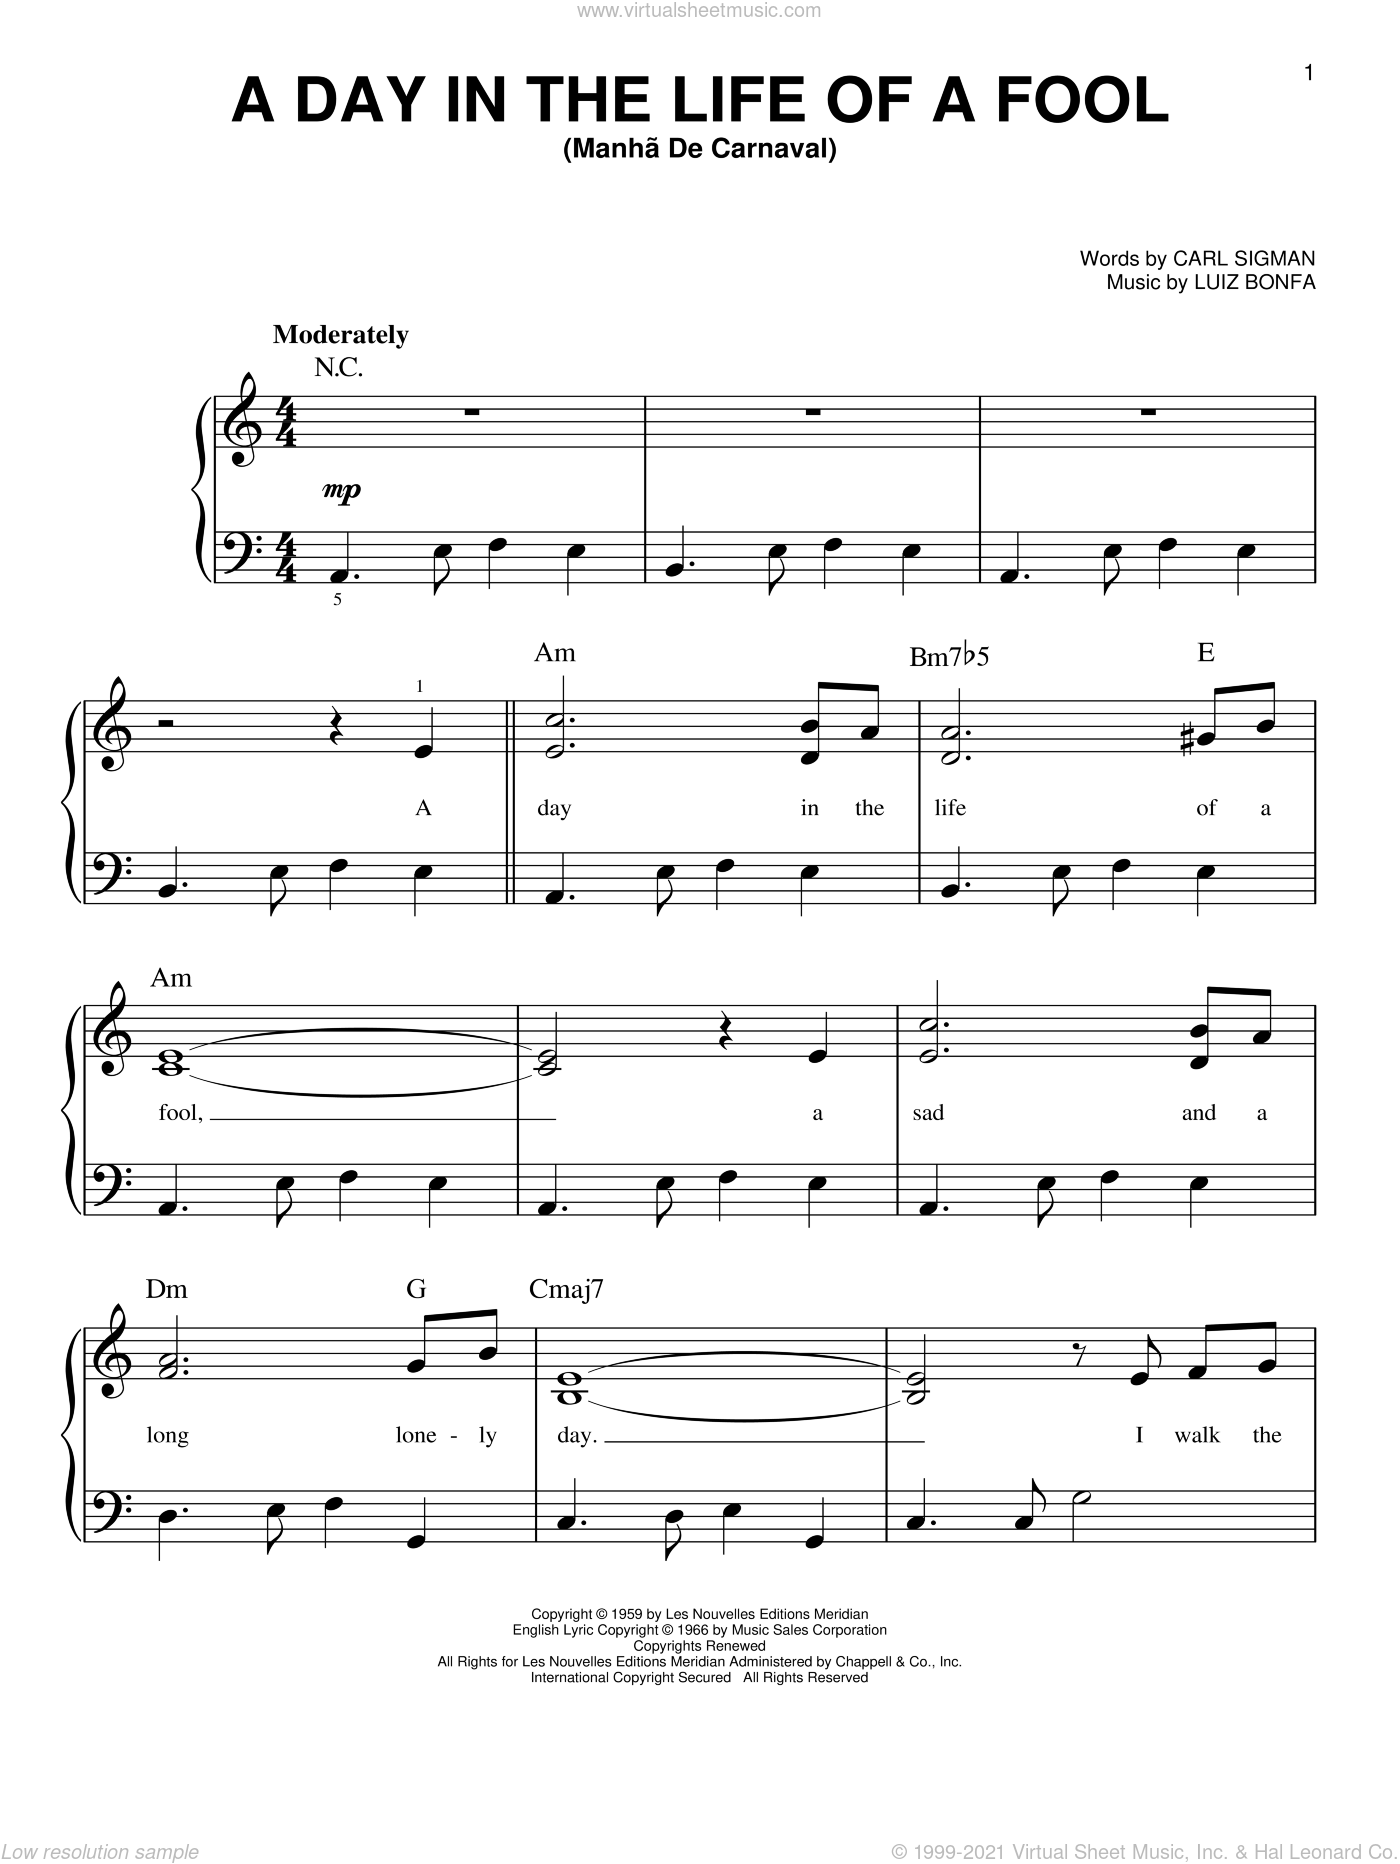 A Day In The Life Of A Fool (Manha De Carnaval) sheet music for piano solo by Luiz Bonfa